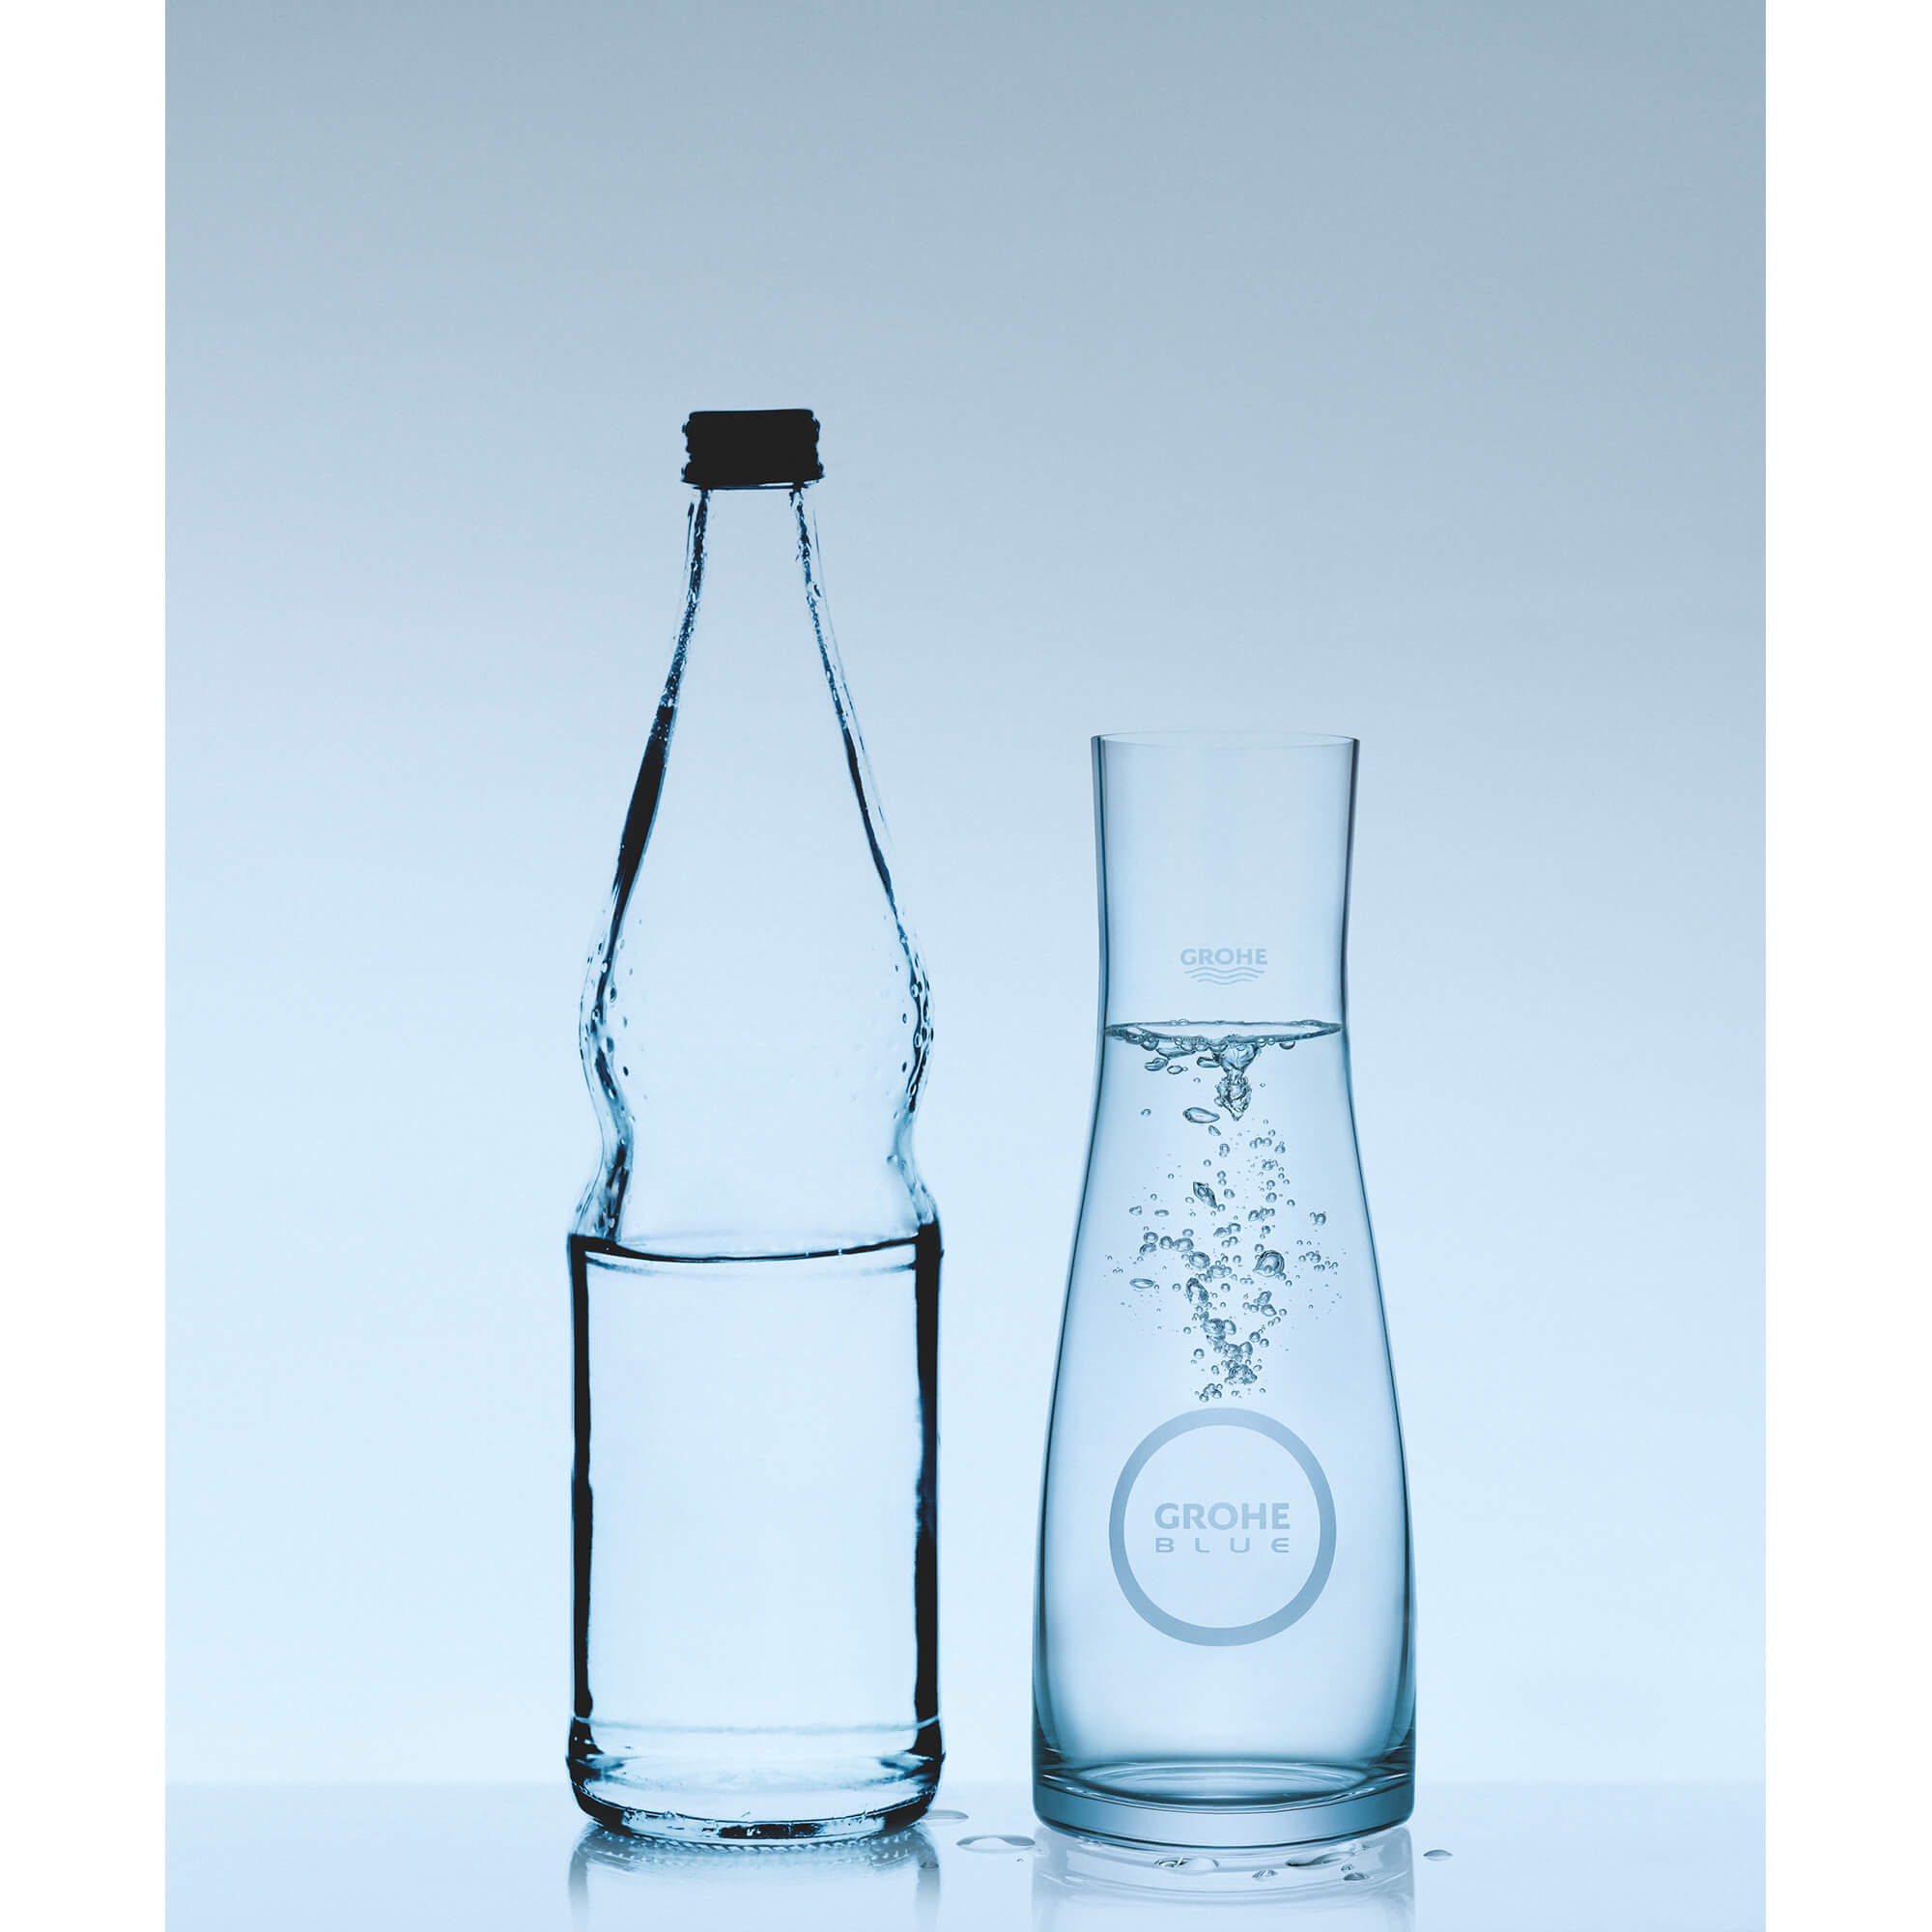 GROHE Blue Glass Carafe GROHE CHROME